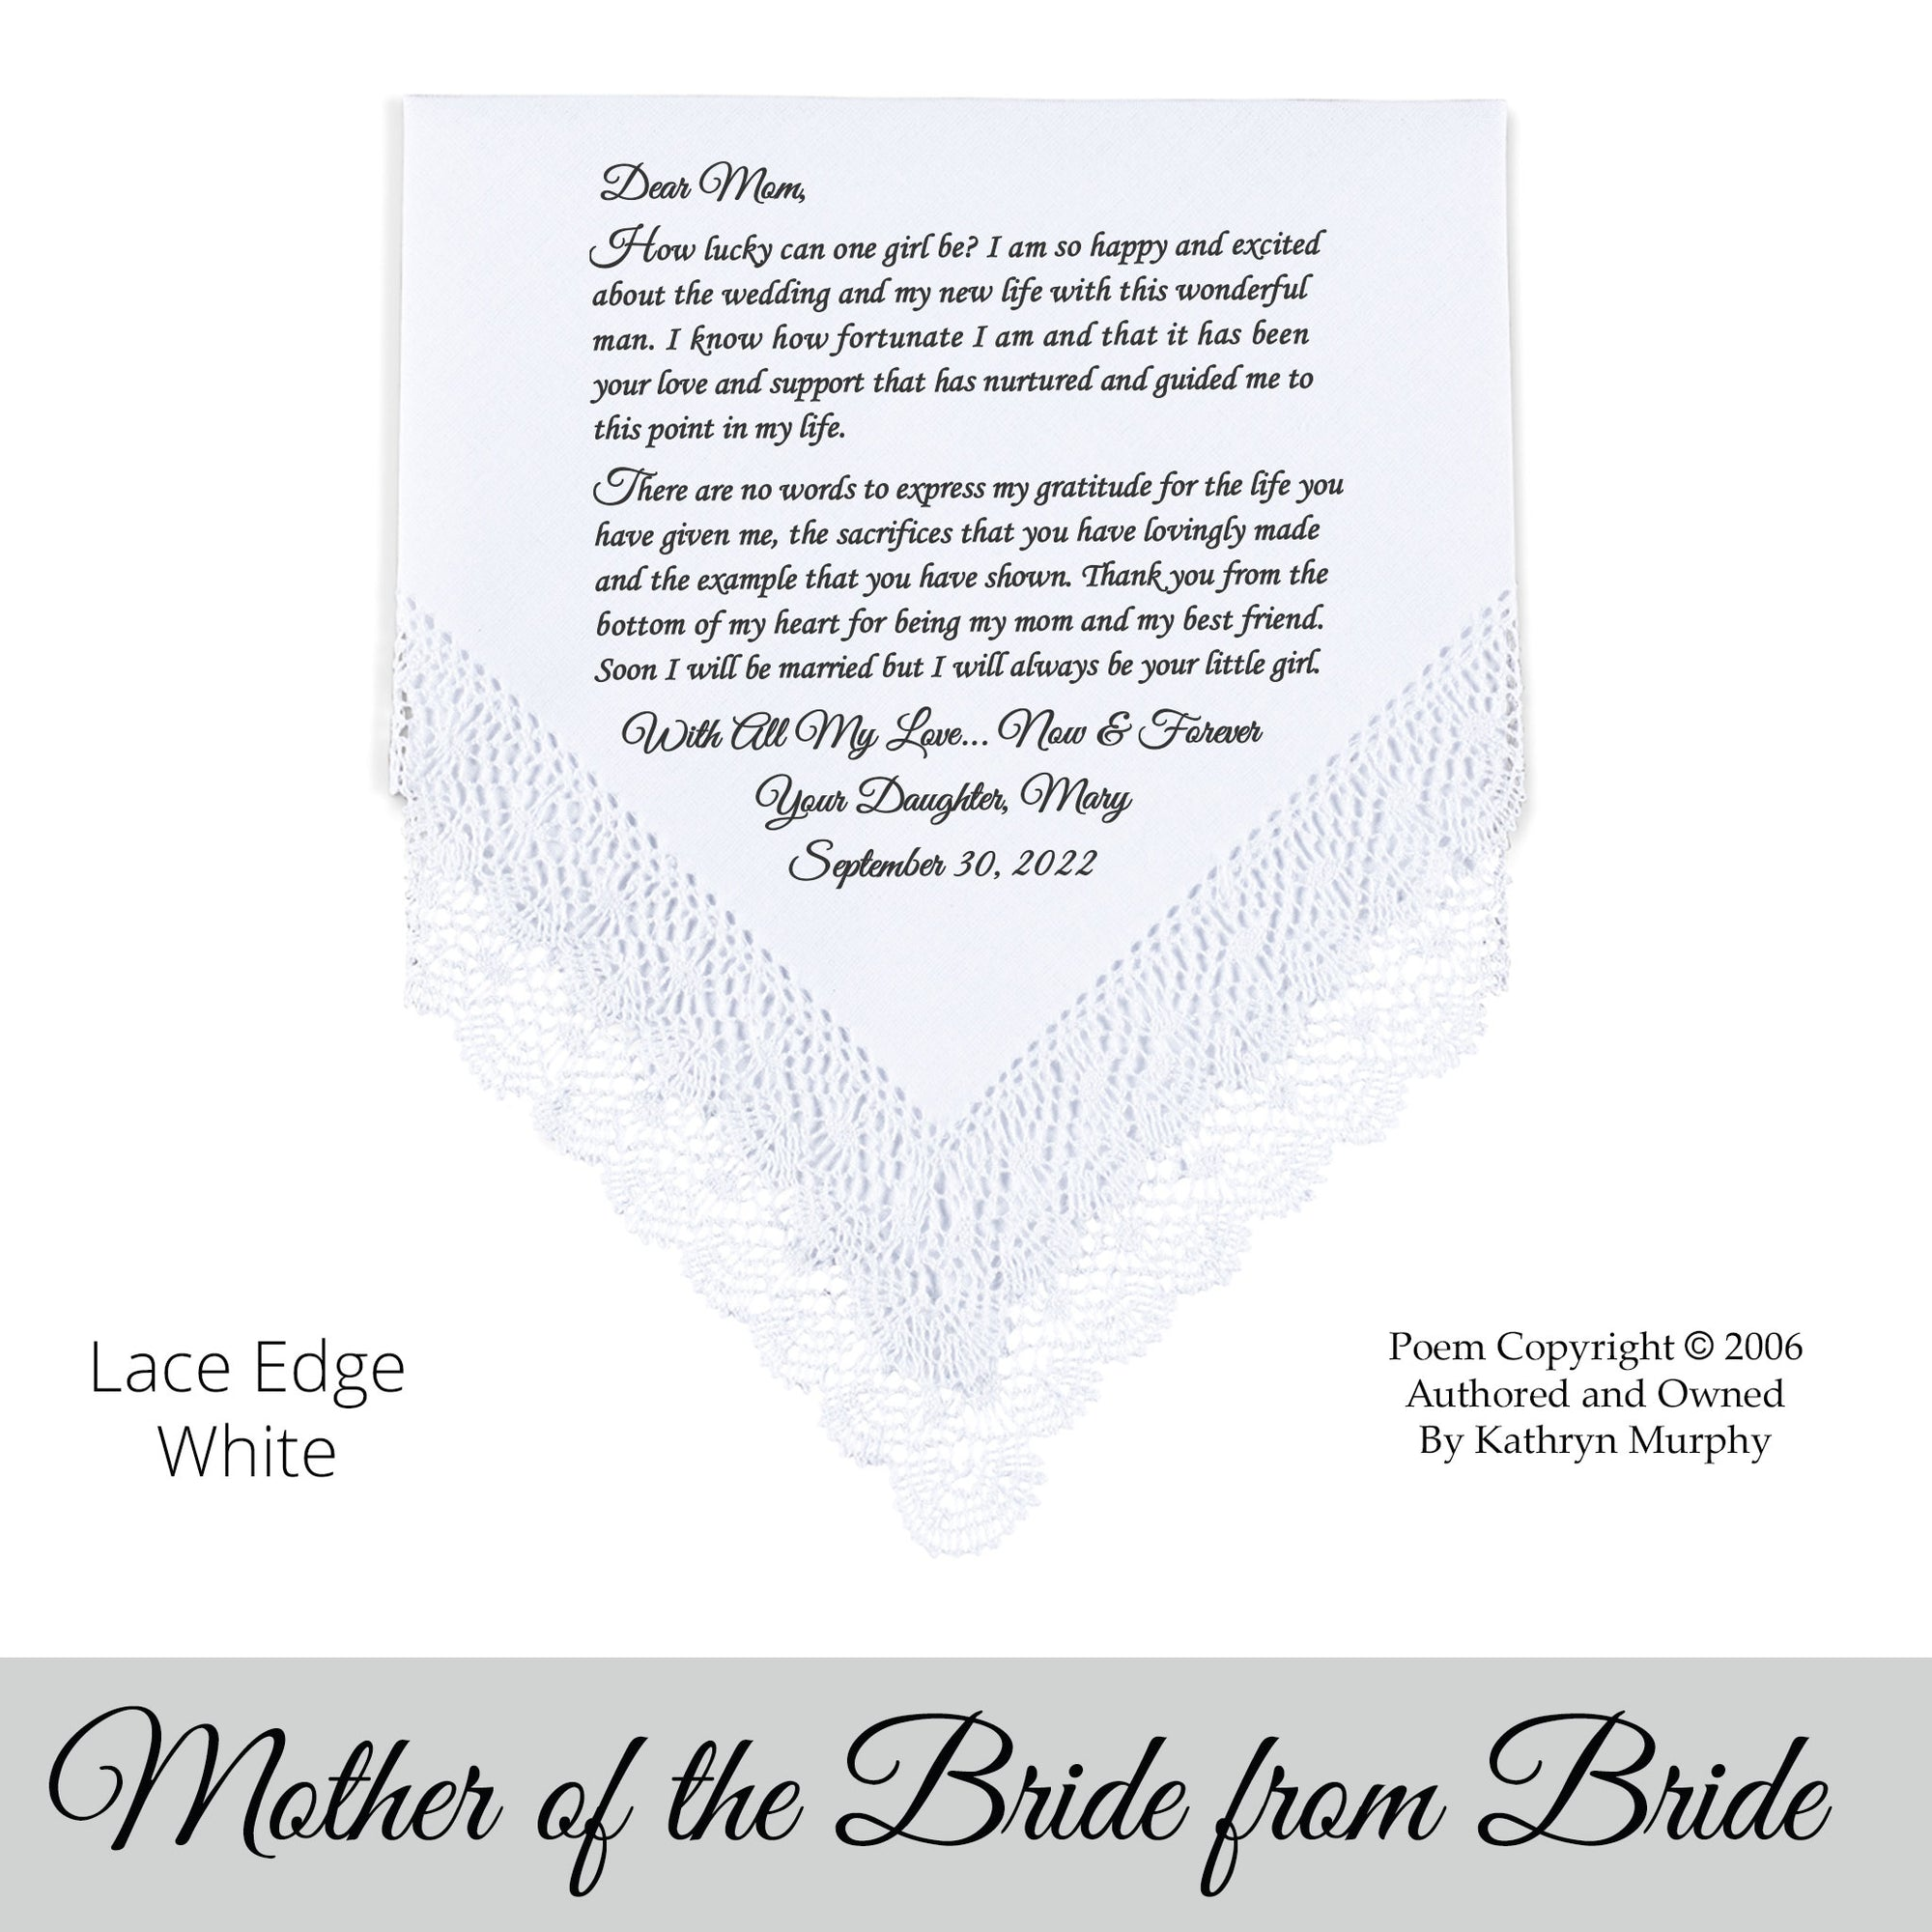 Poem Printed Wedding Hankie For Mother Of The Bride From Bride How Lucky Can I Be